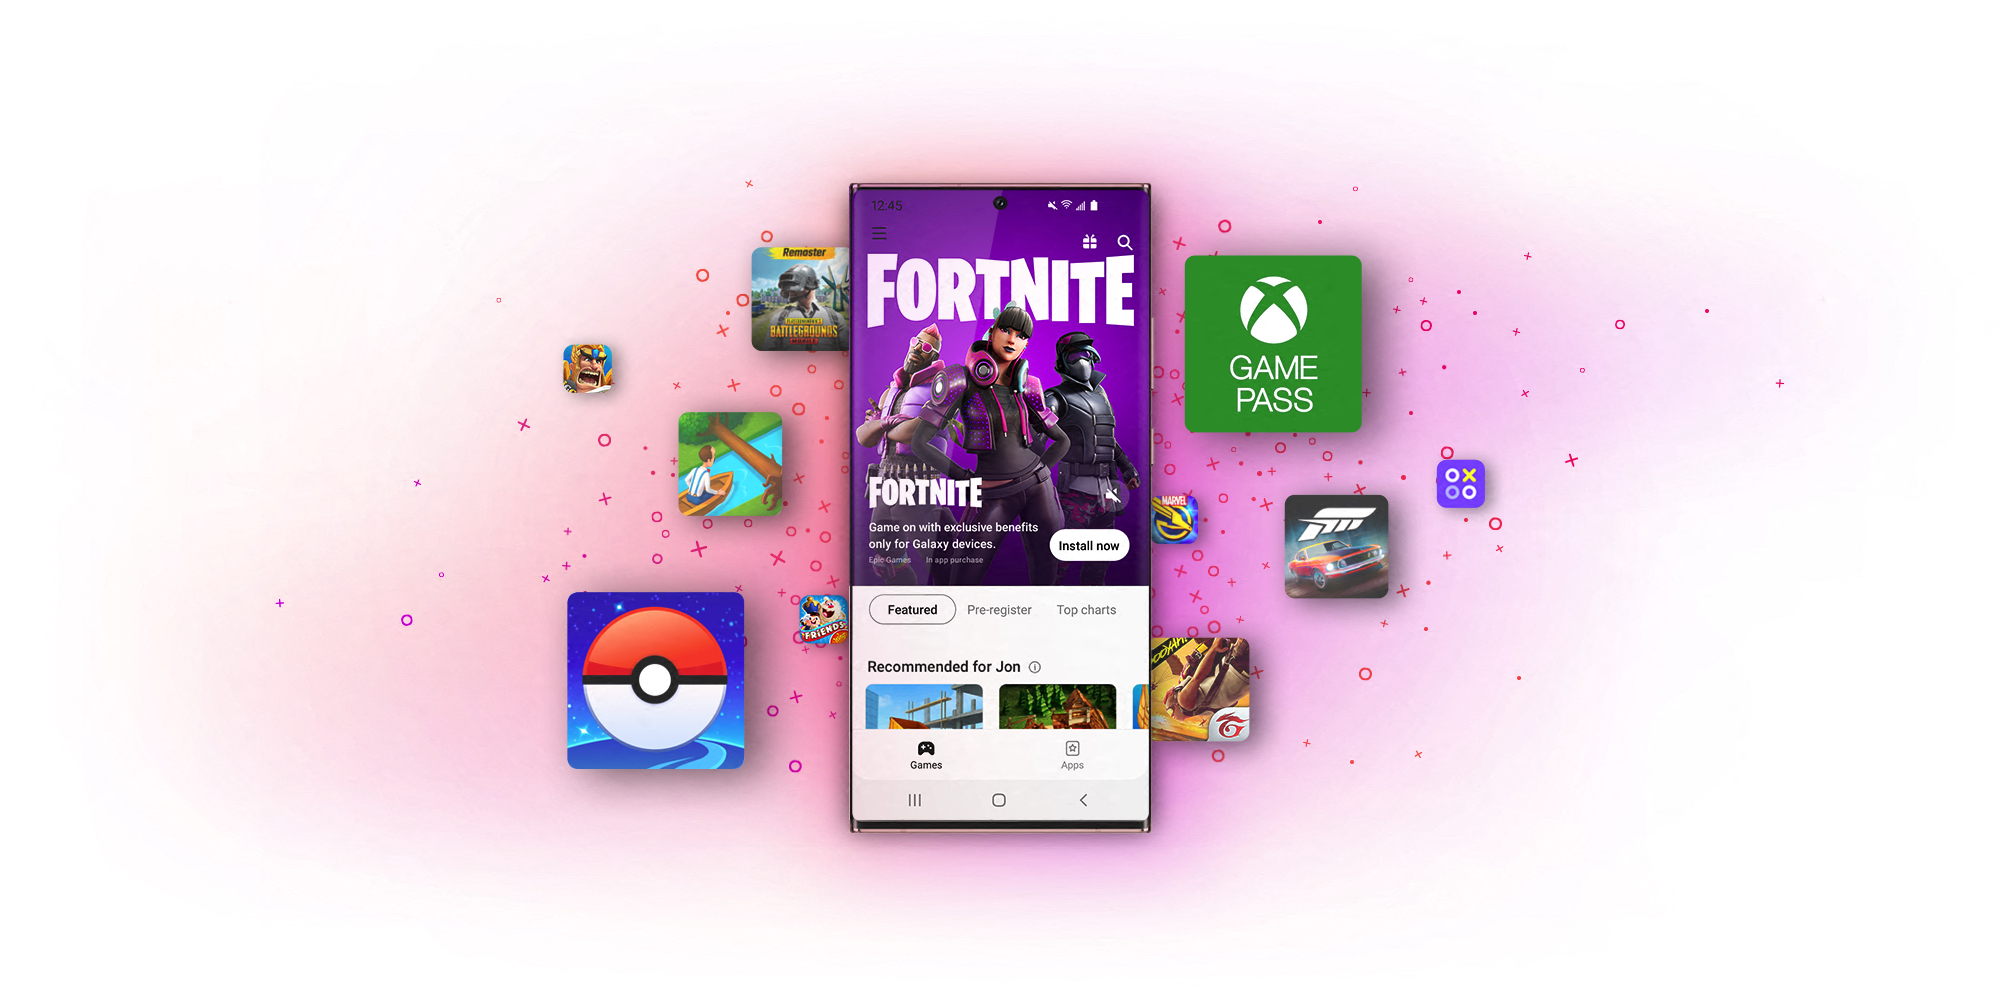 Galaxy Store Goes All-in for Gaming - Fortnite